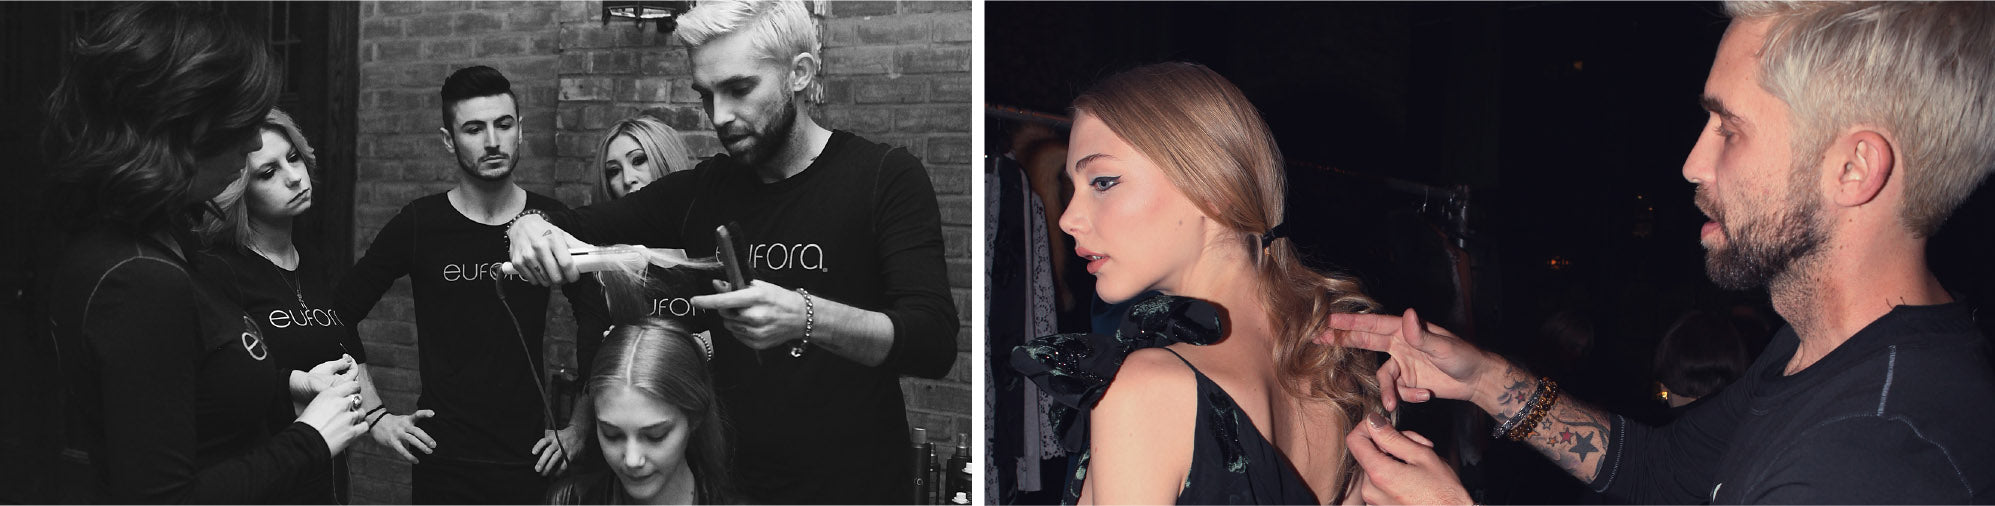 Stylists giving training lessons with models